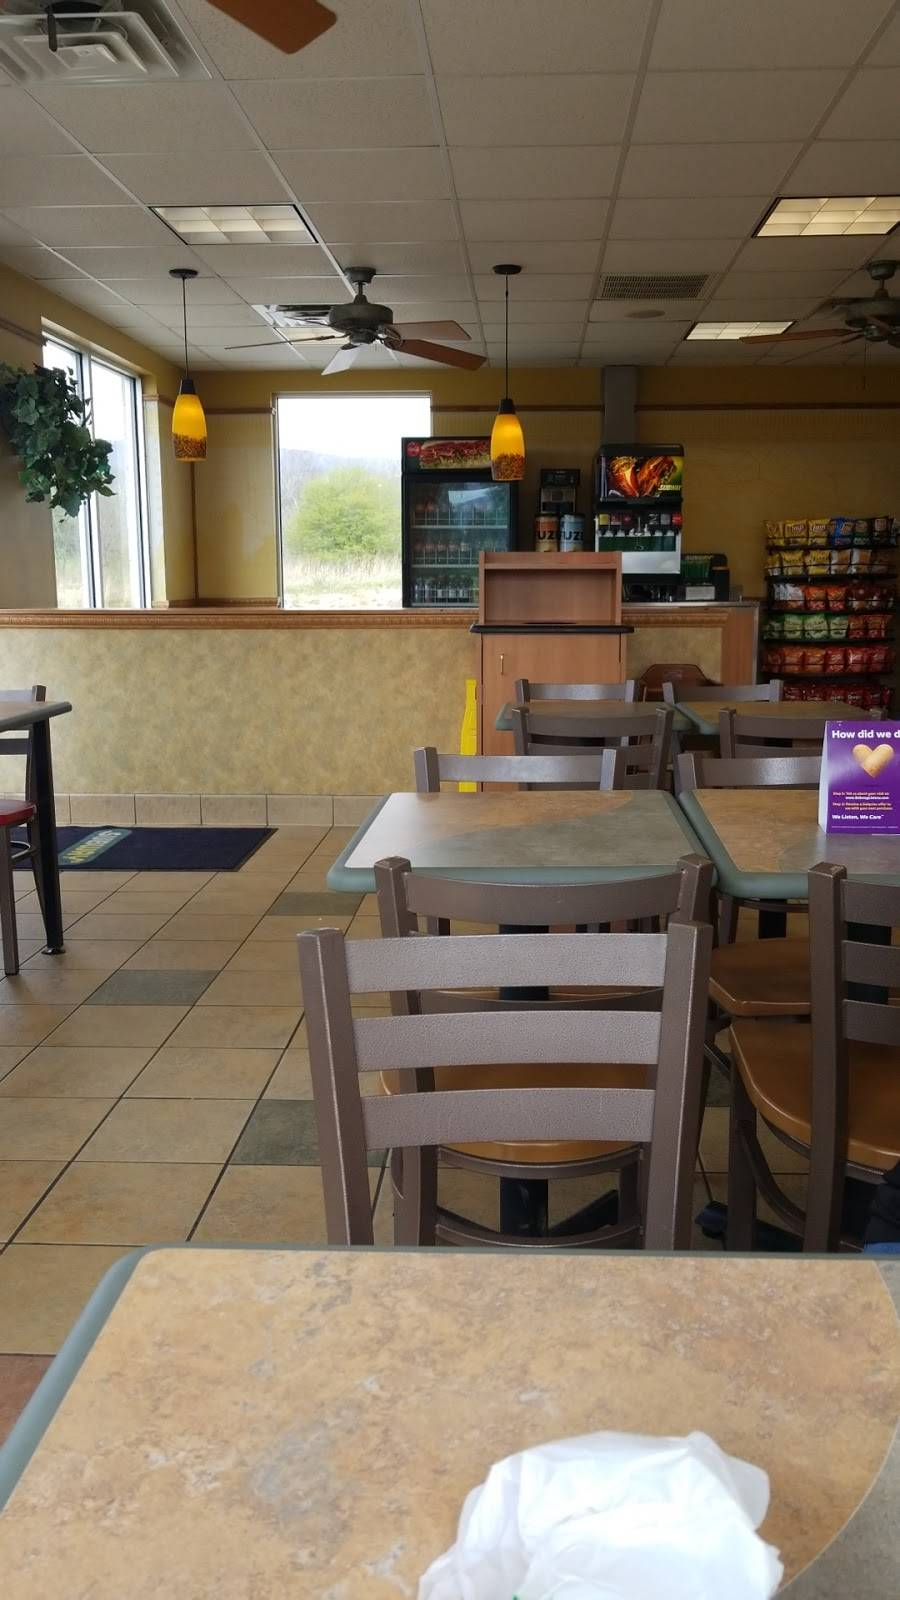 Subway | restaurant | 564 US-127 BYP, Pikeville, TN 37367, USA | 4234472008 OR +1 423-447-2008